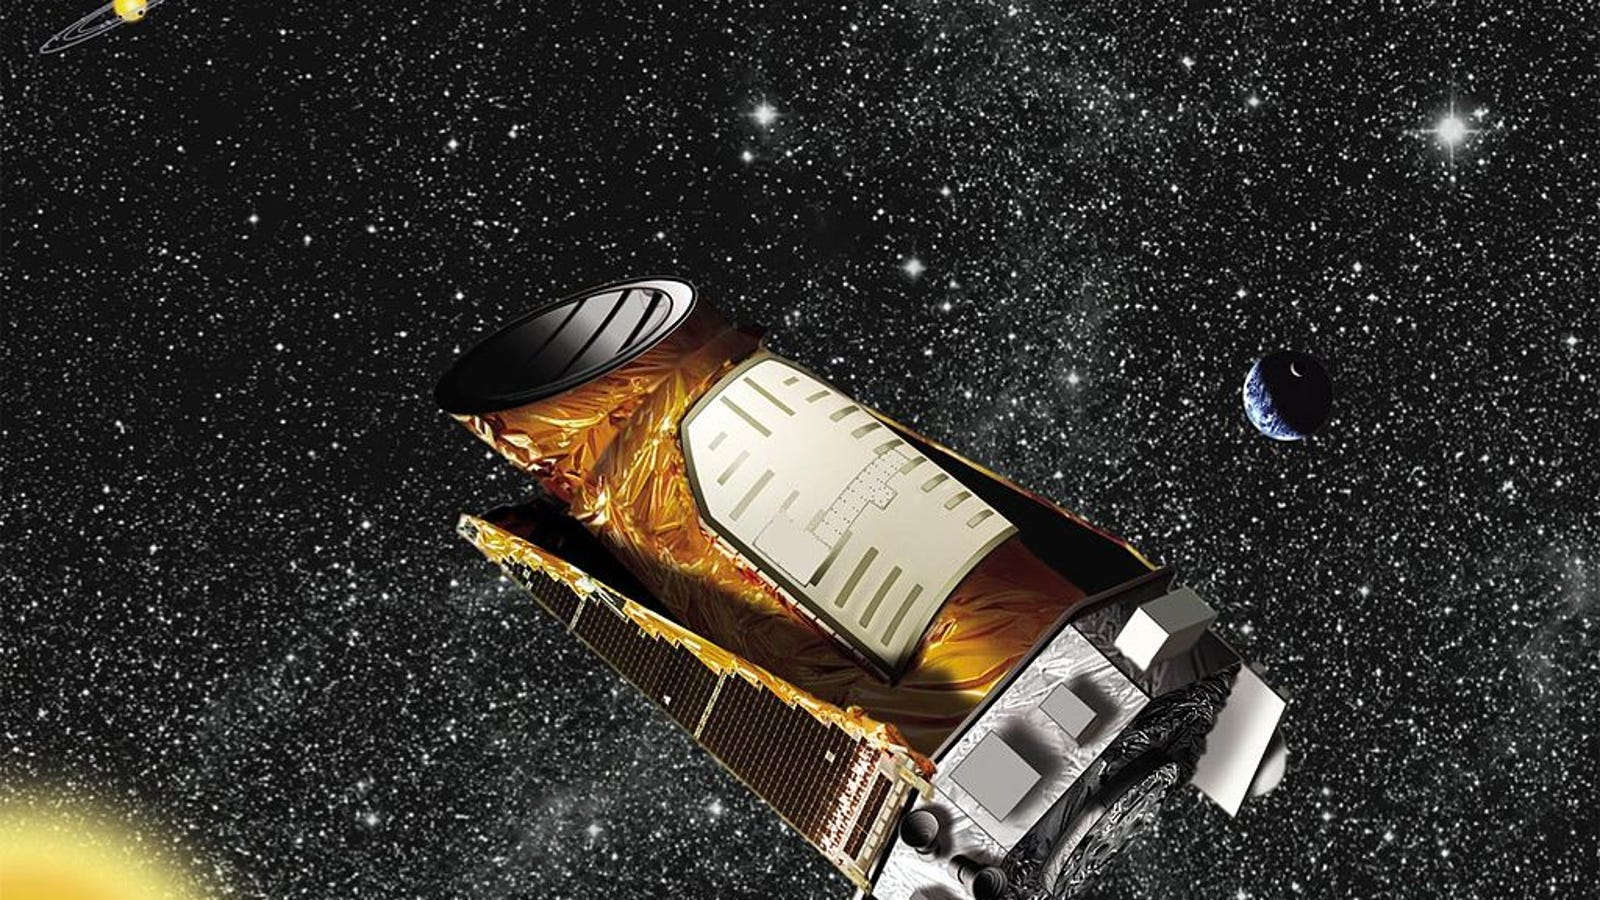 Kepler May Be the Most Productive Broken Telescope Ever